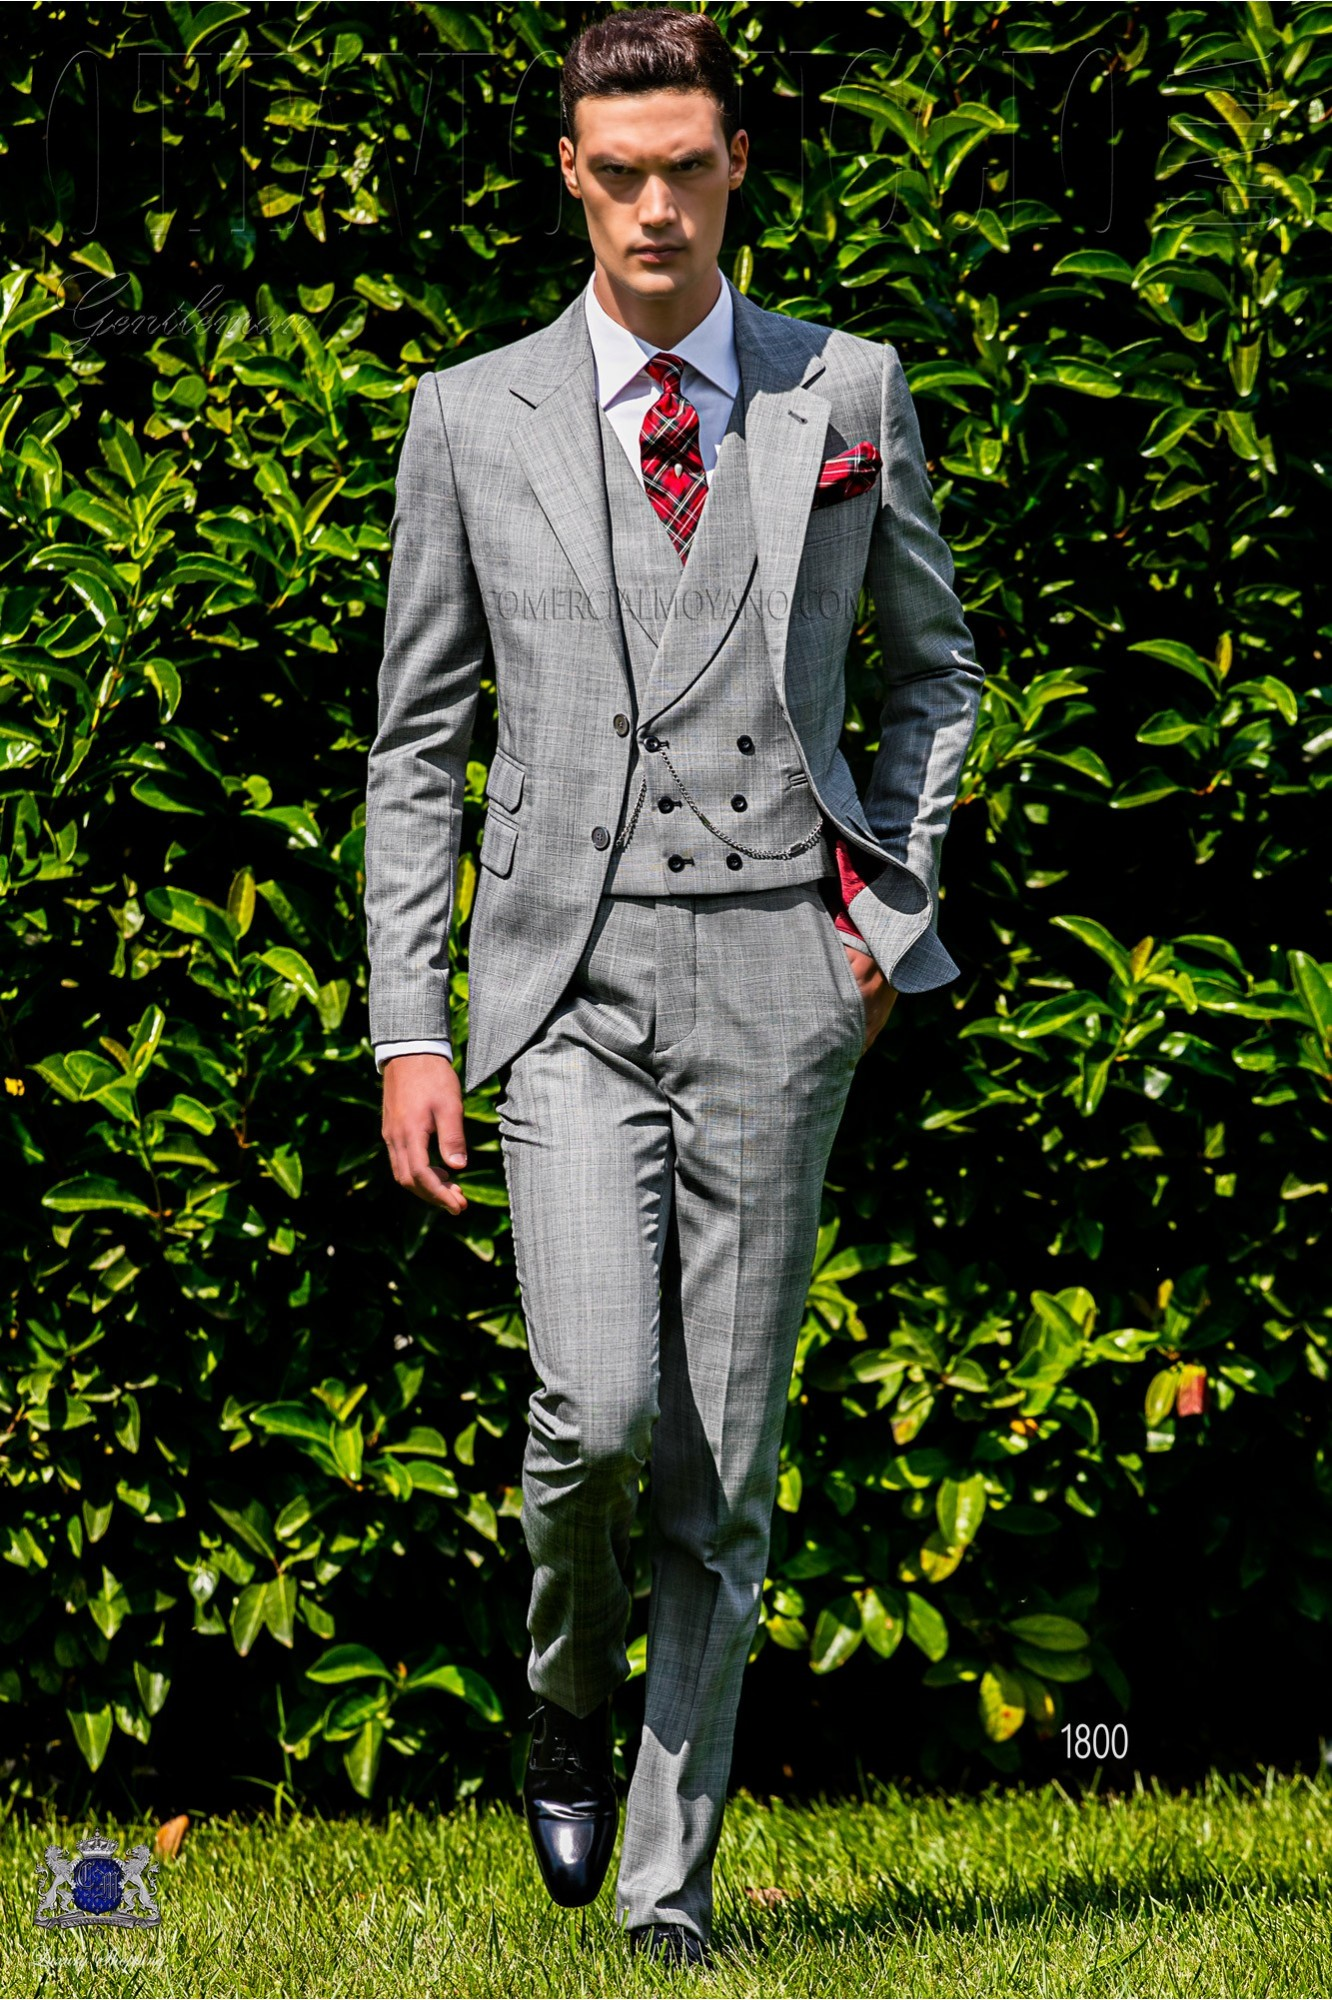 Bespoke Prince of Wales grey and red suit model 1800 Ottavio Nuccio Gala